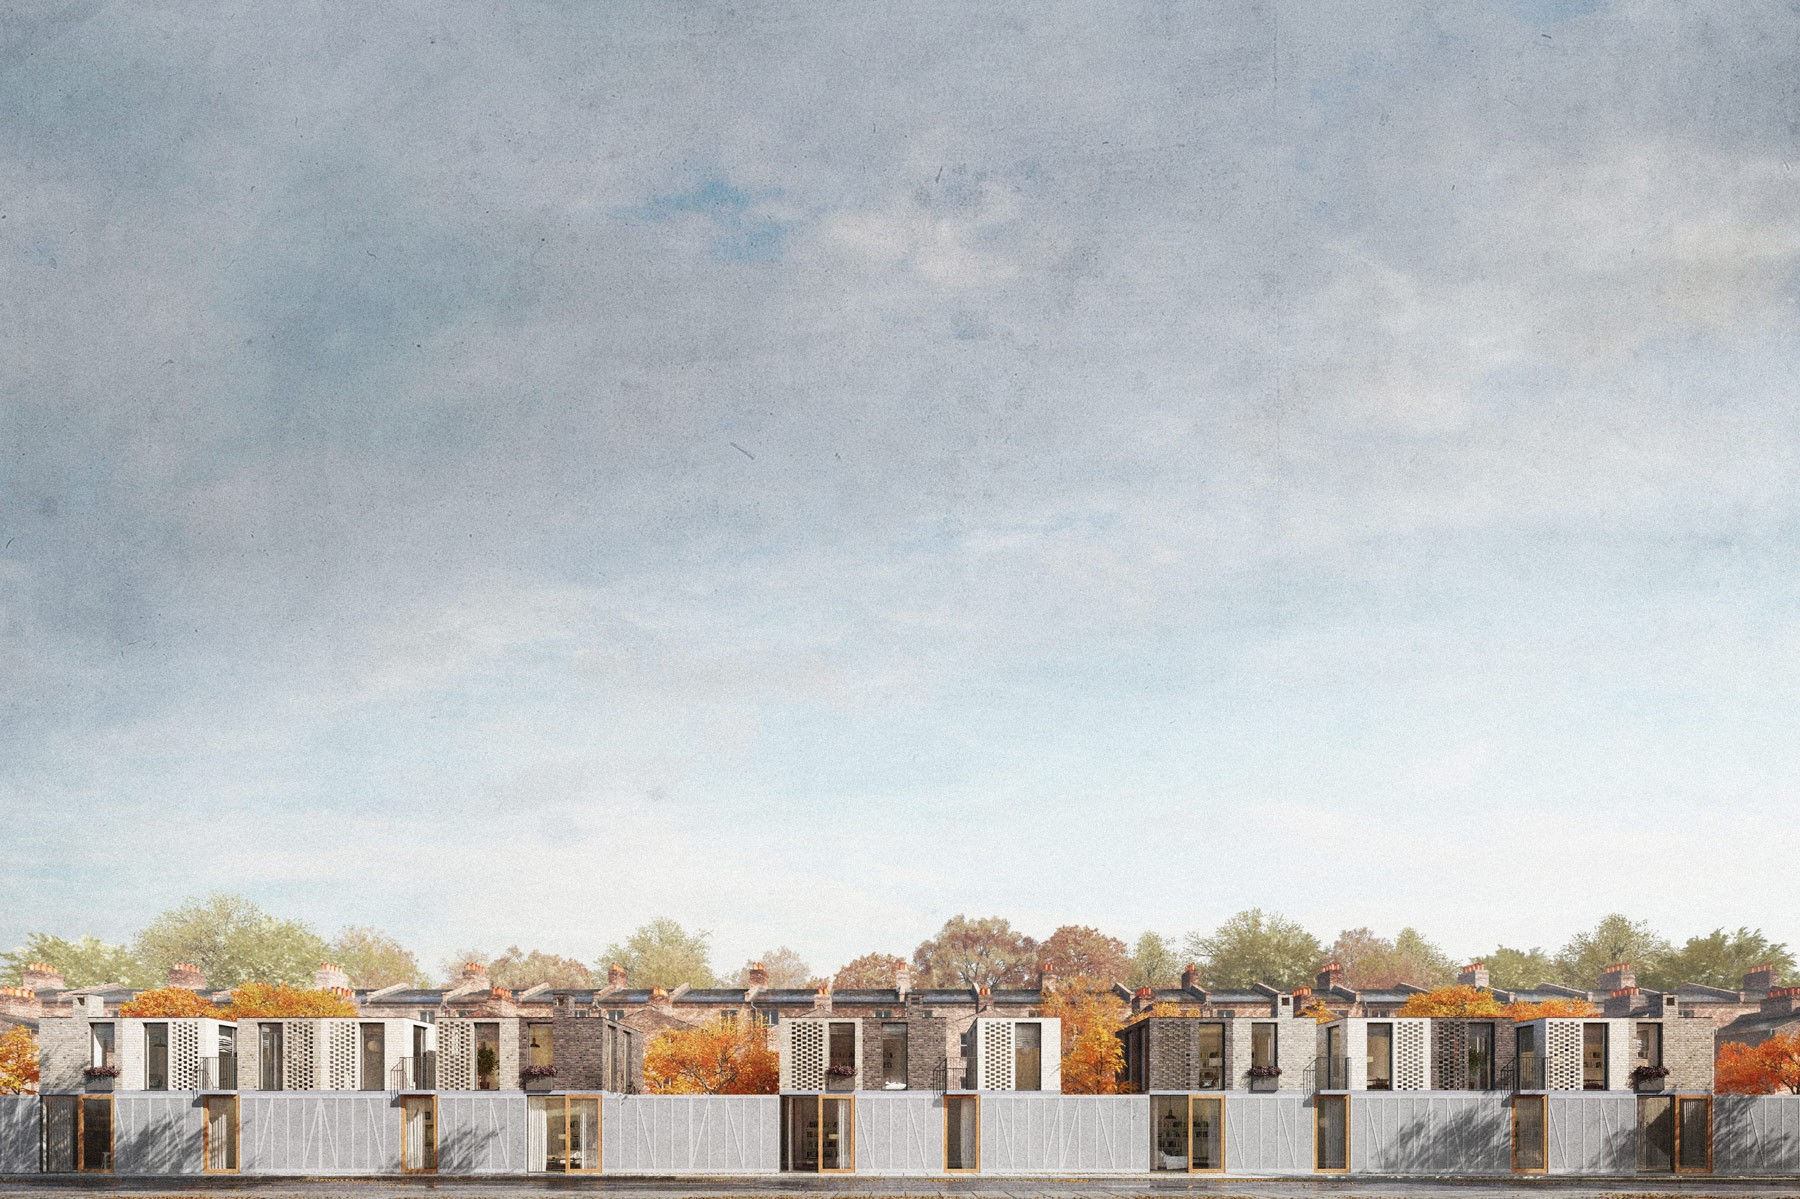 architect designed terrace housing in Hackney, east london